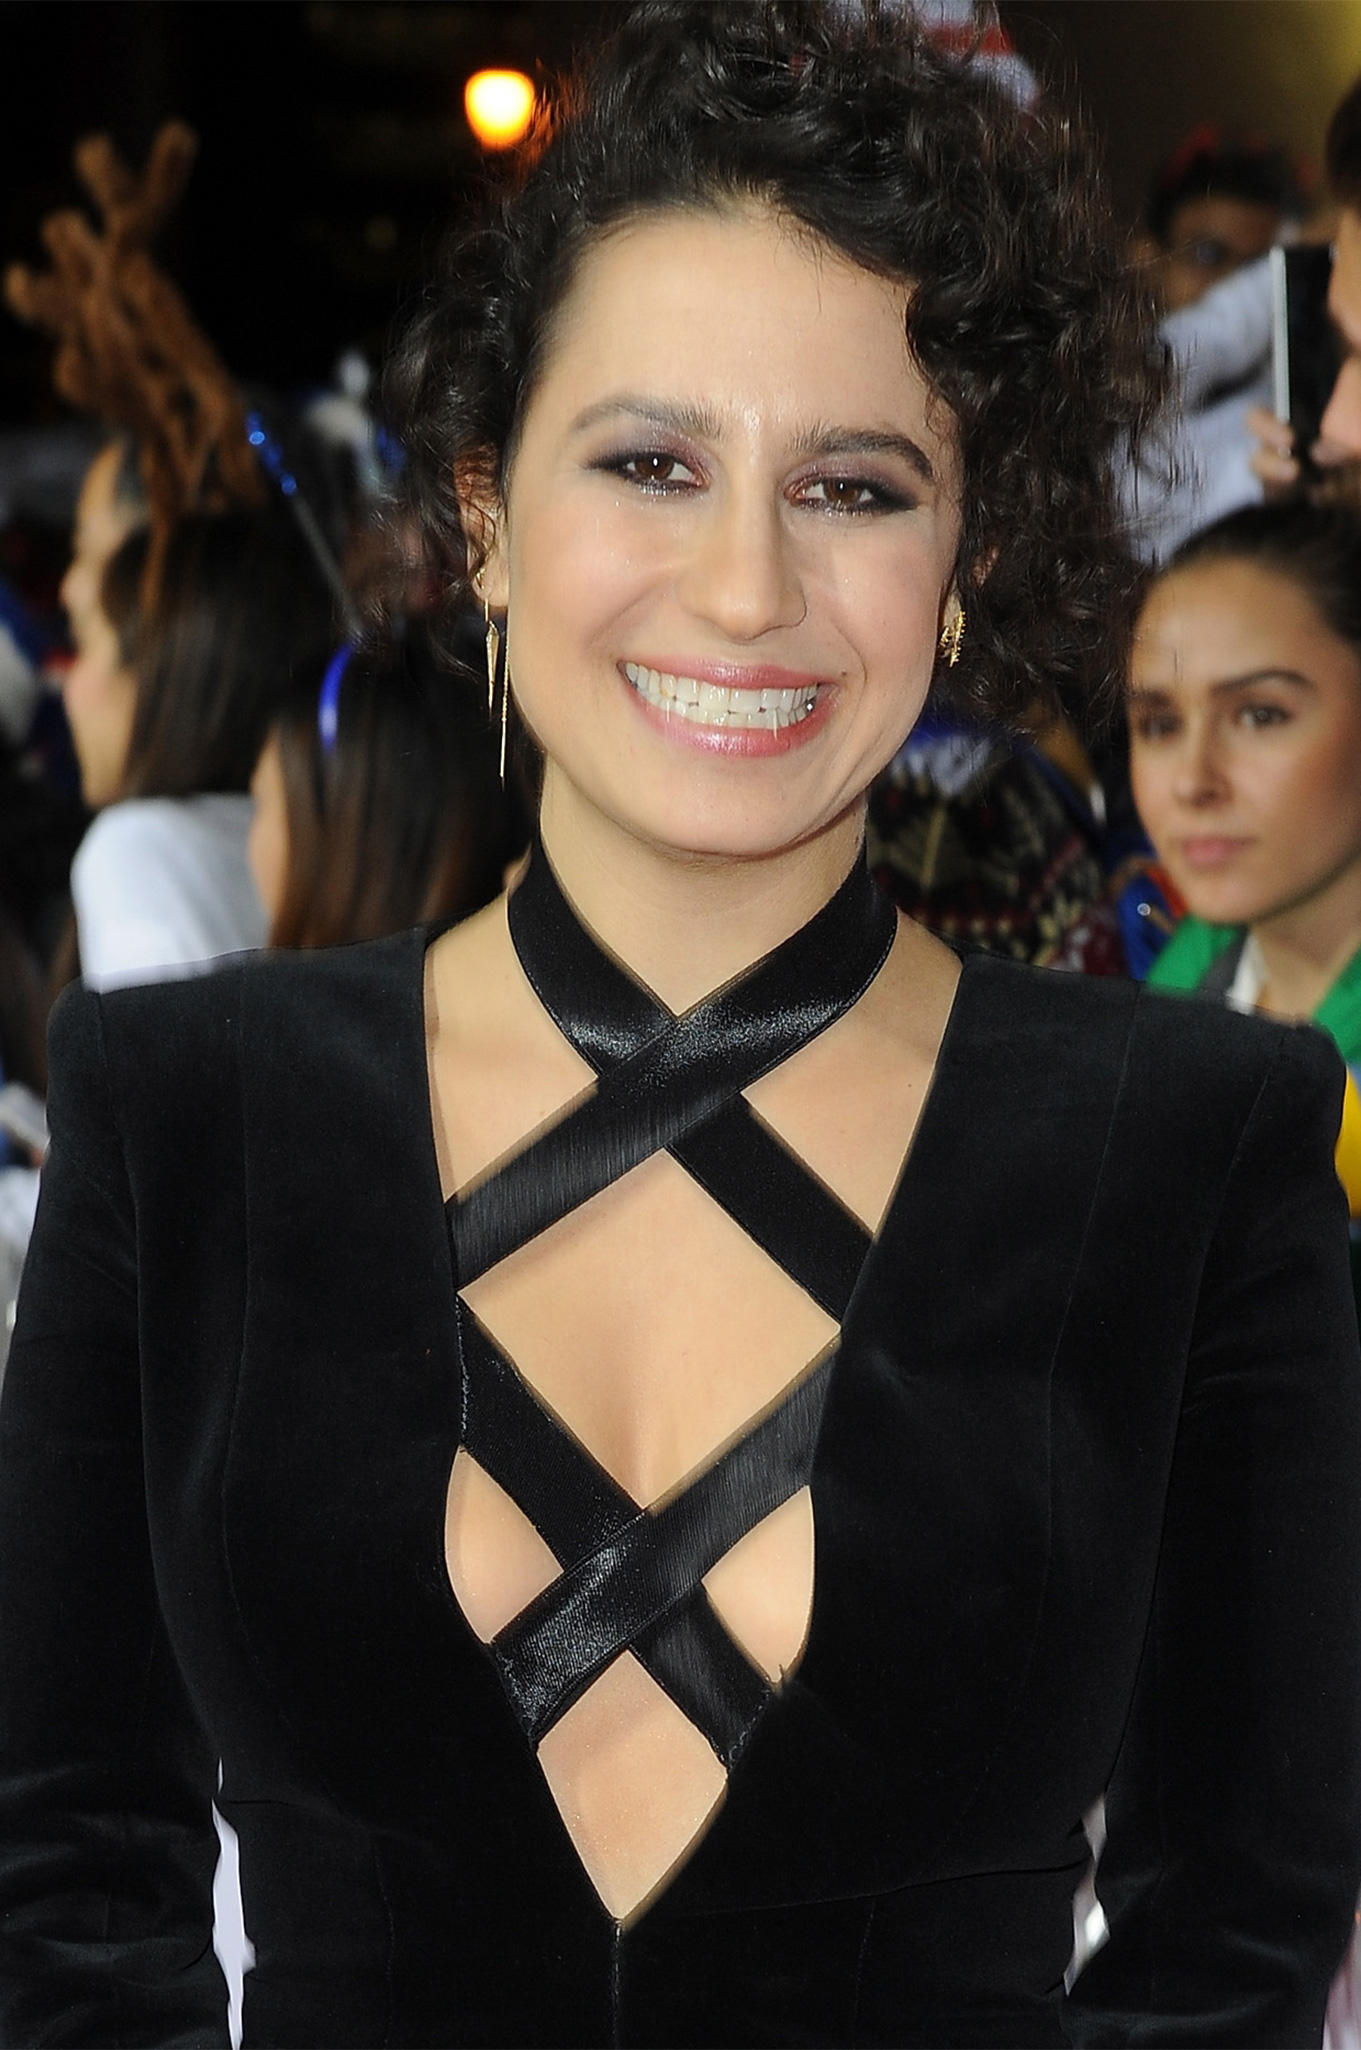 Ilana Glazer at the California premiere of